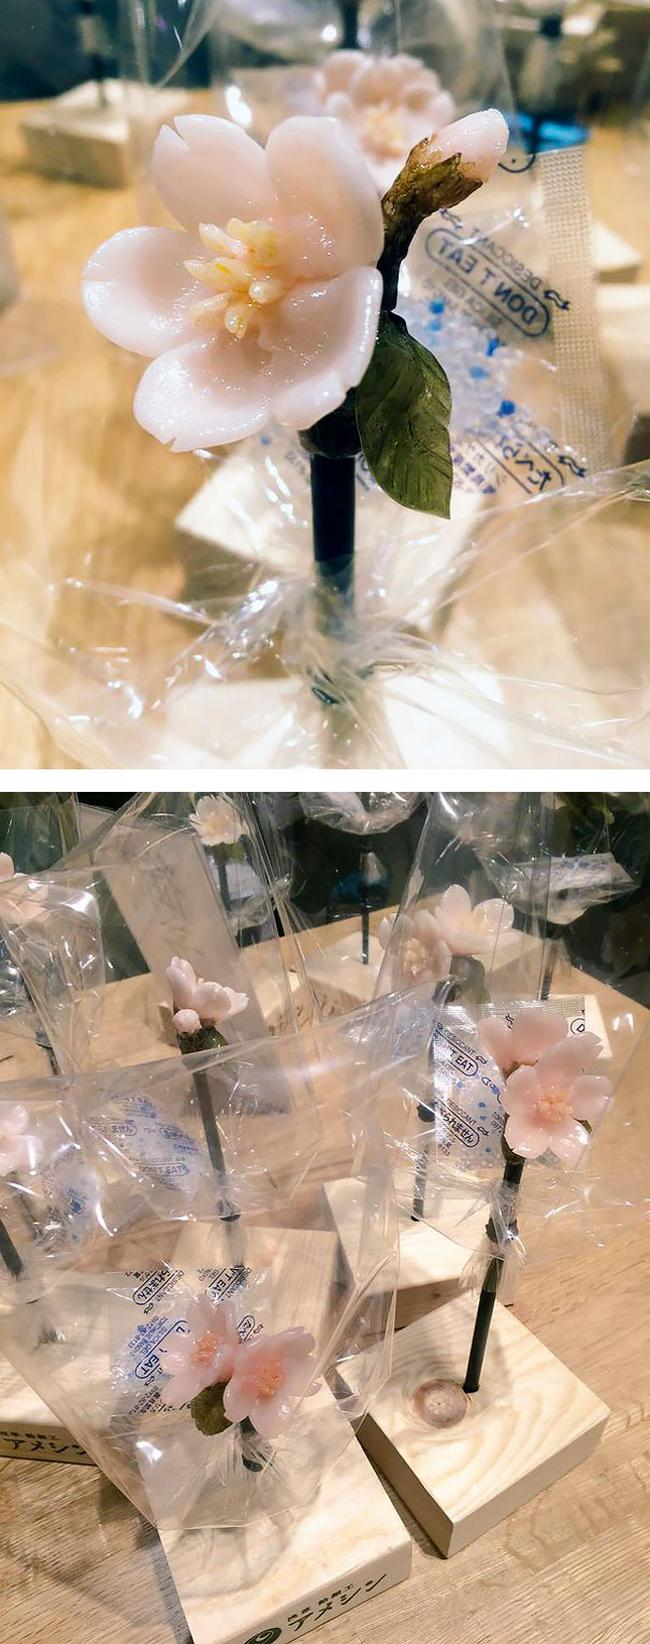 Doces-Japoneses-27